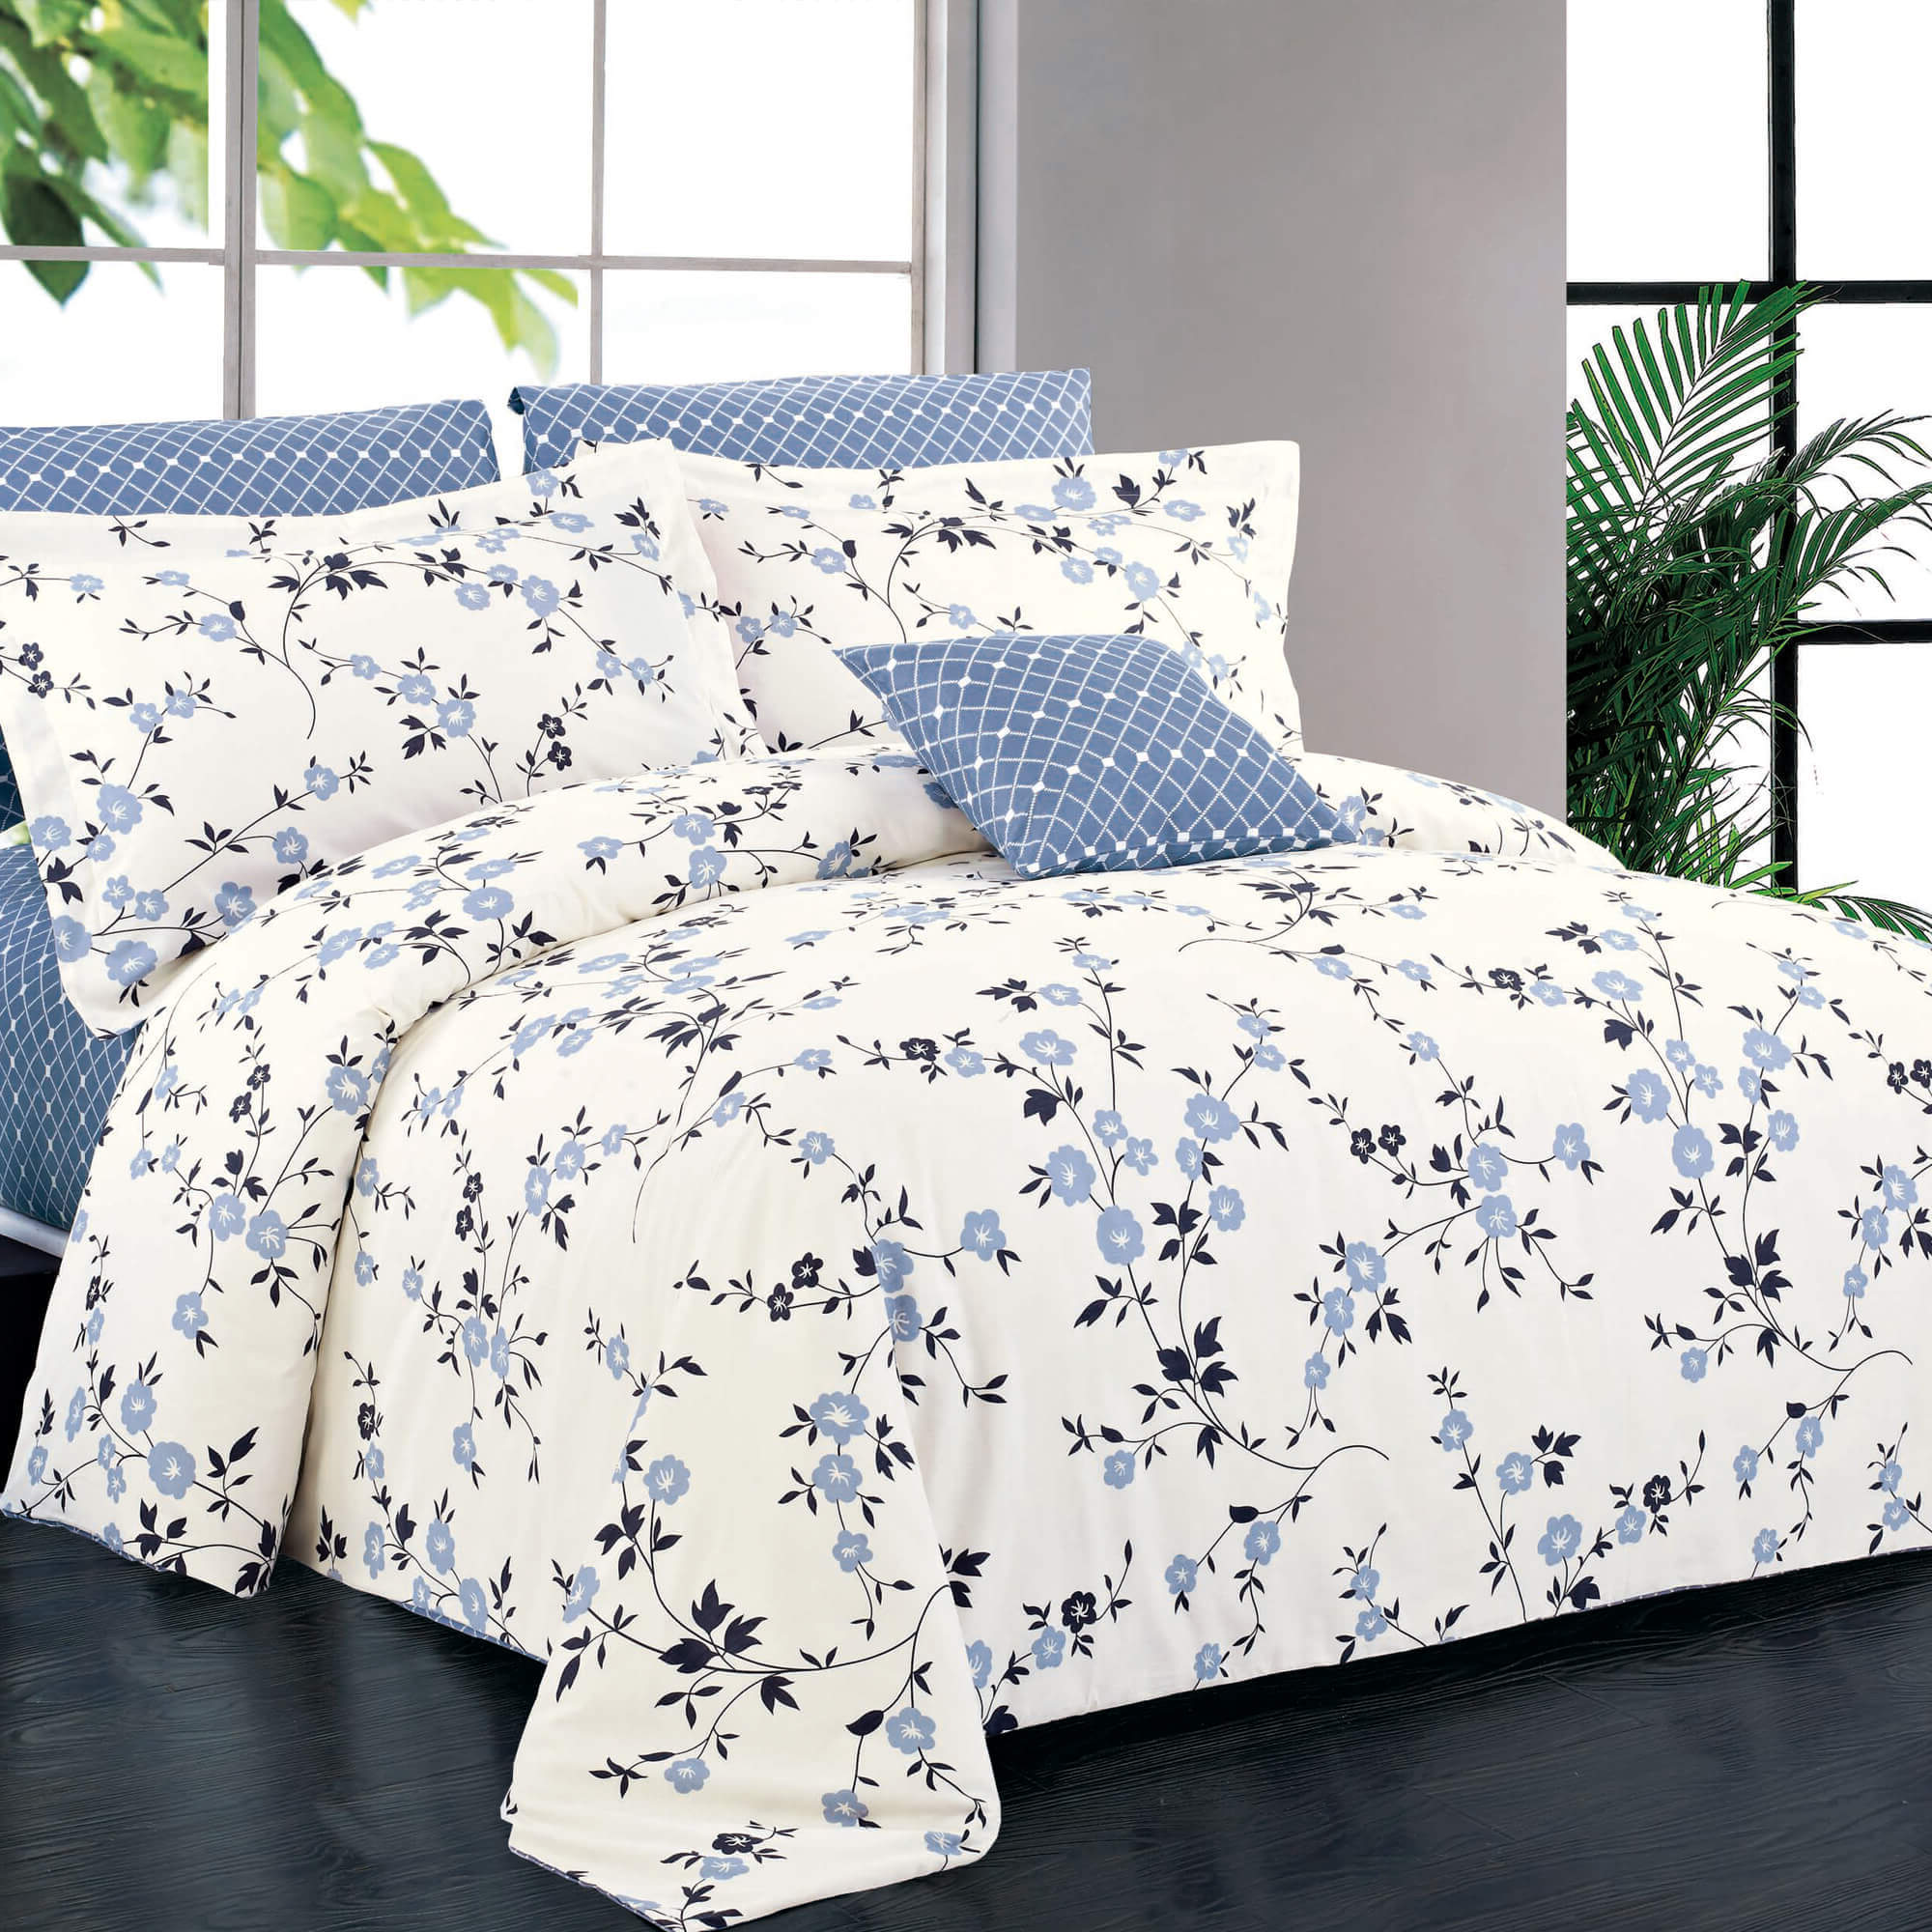 Adelaide Duvet Cover Set